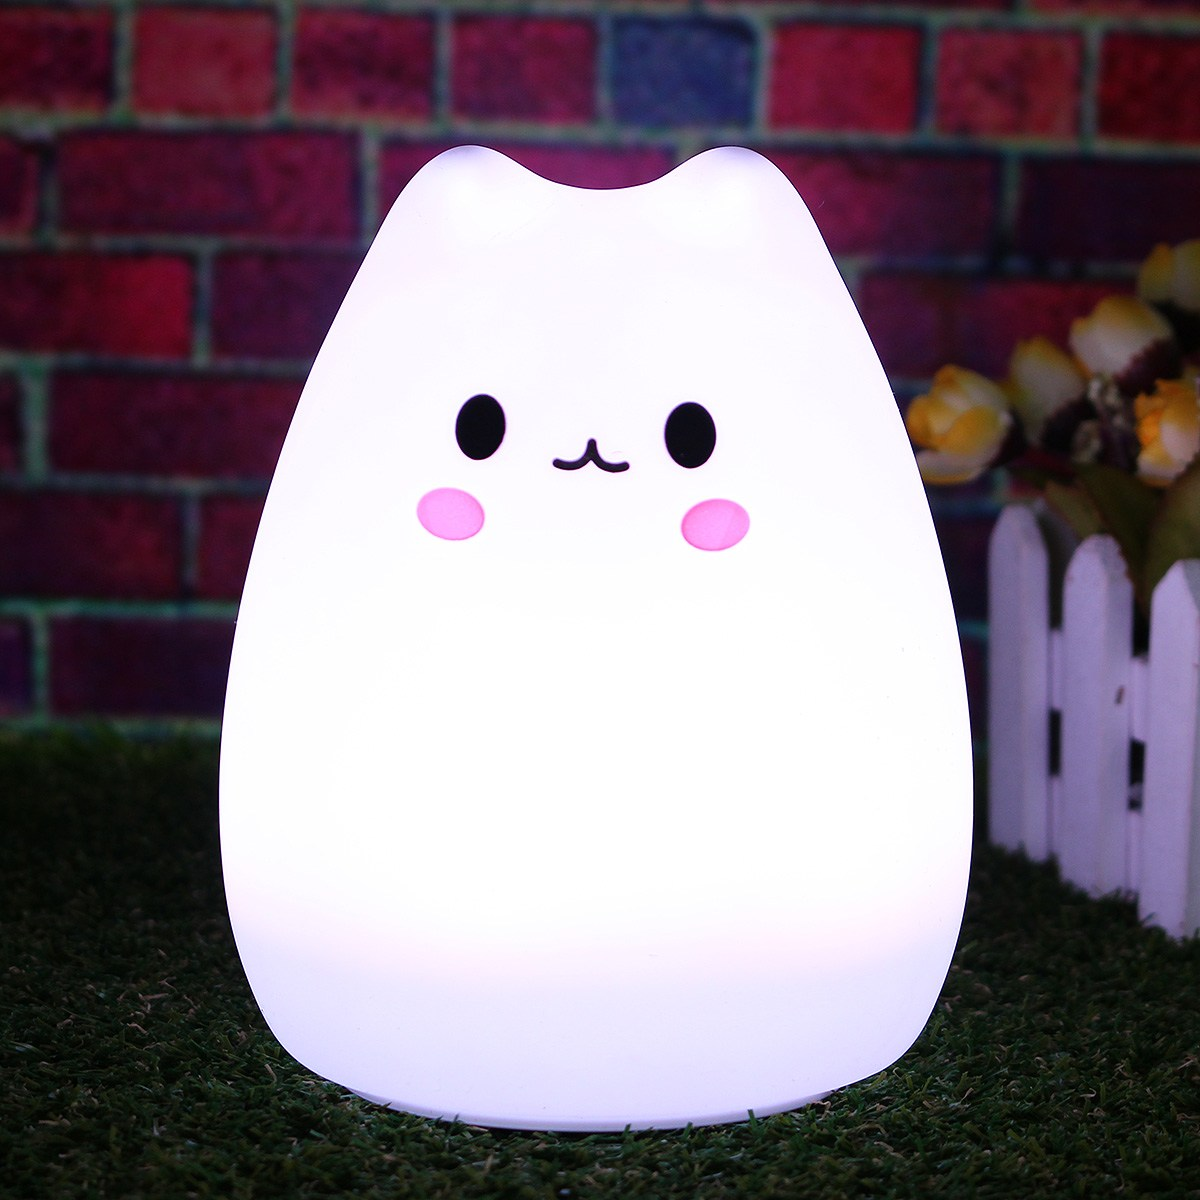 3 Style LED Colorful Silicone Animal USB Rechargeable Power Cat Night Light Remote Control Table Lamp Bedroom Children Gift led remote control colorful eggs rechargeable bar table lamp ktv night club light dimming color led night light free shipping